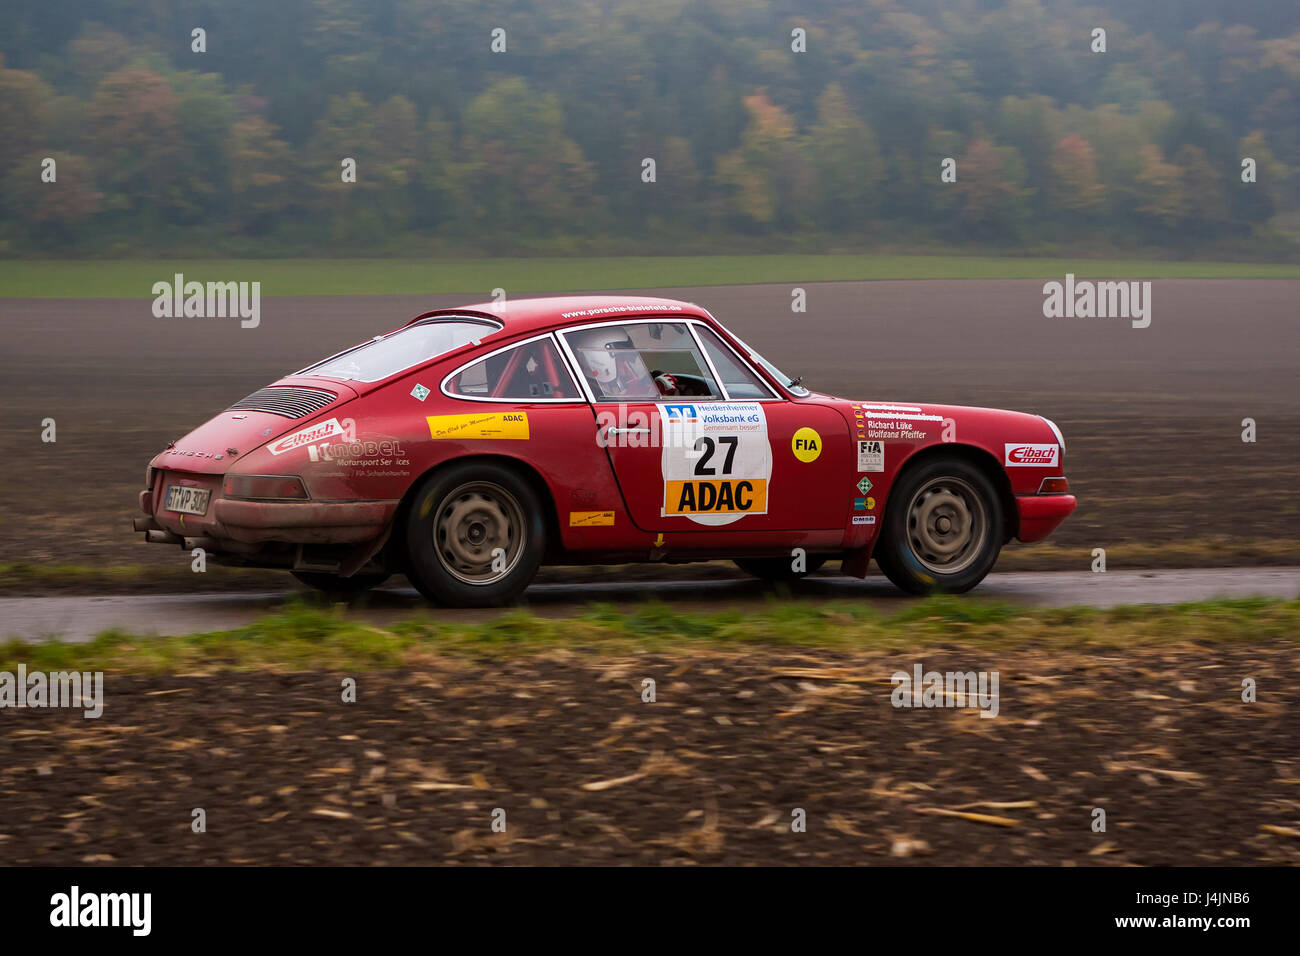 FLEINHEIM, GERMANY – OCTOBER 5, 2013: Wolfgang Pfeiffer and Richard Lüke driving their Porsche 911T at the - Stock Image